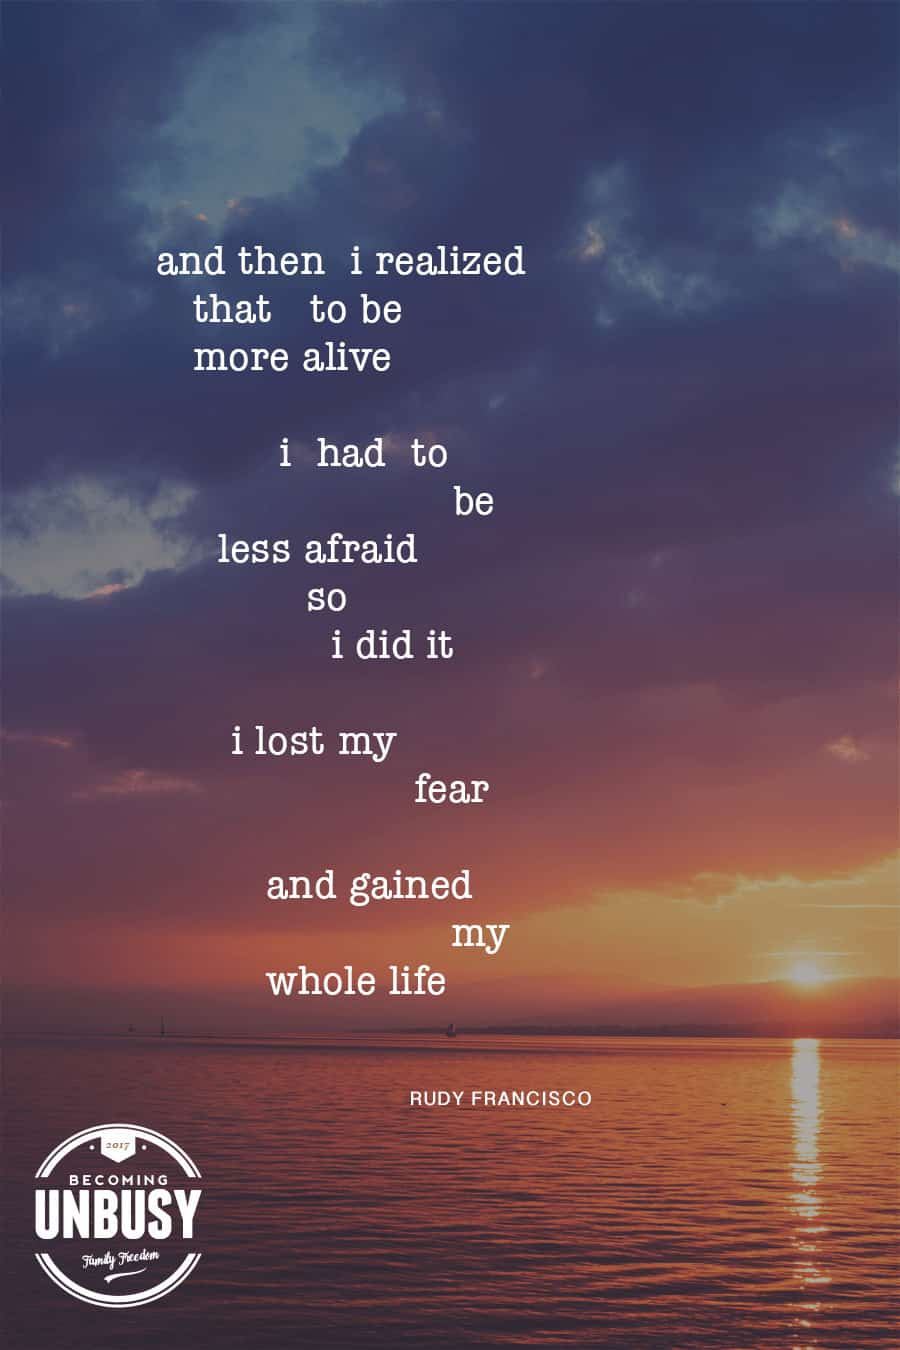 And then I realized that to be more alive I had to be less afraid so I did it... I lost my fear and gained my whole life. #poems #lifequotes #poetry *Loving this collection of 12 Poems About Life For a Beautiful Life Well-Lived